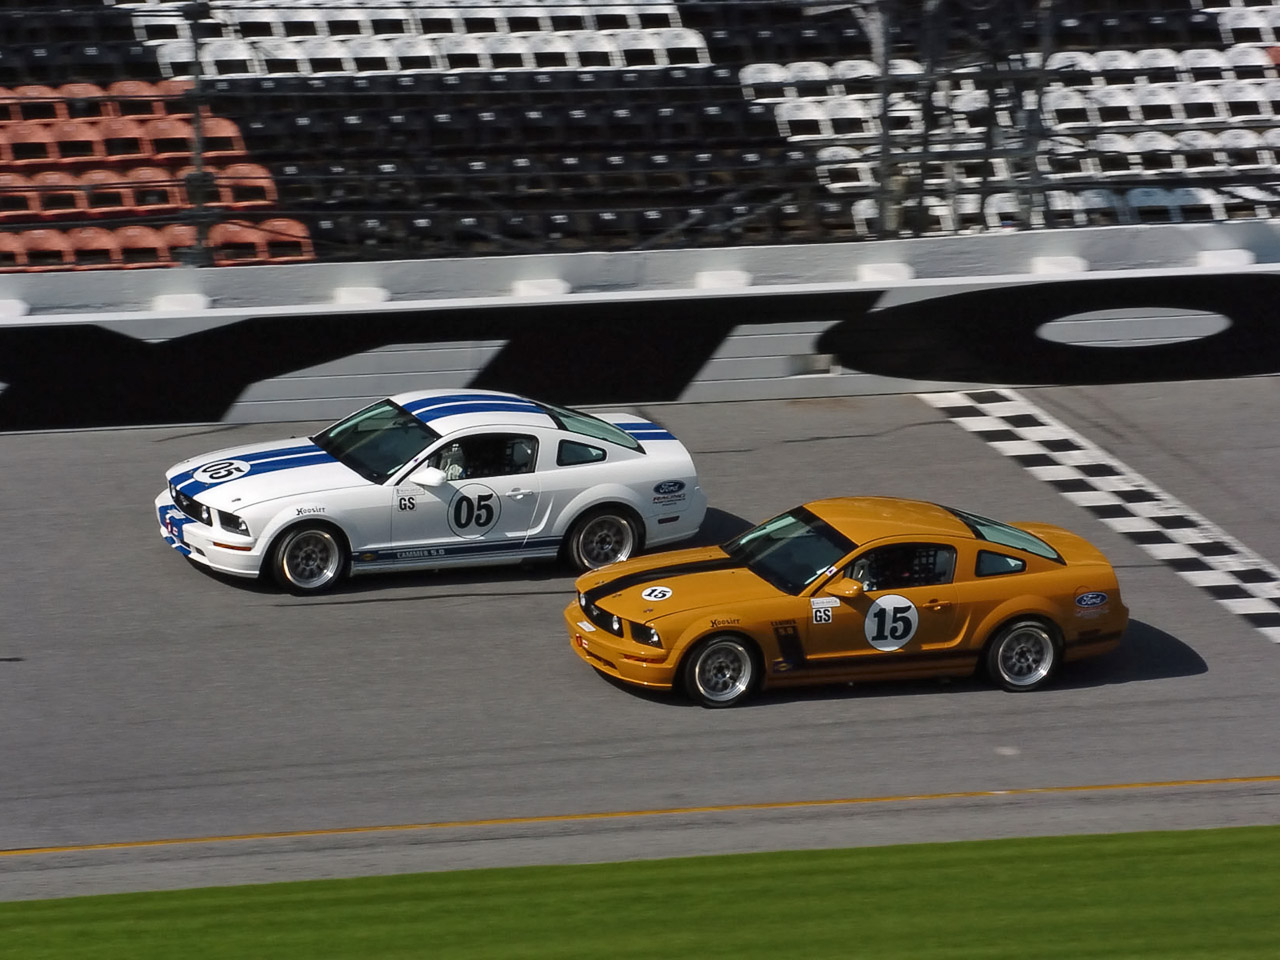 2005 Ford Mustang Racecar Prototype photo - 2